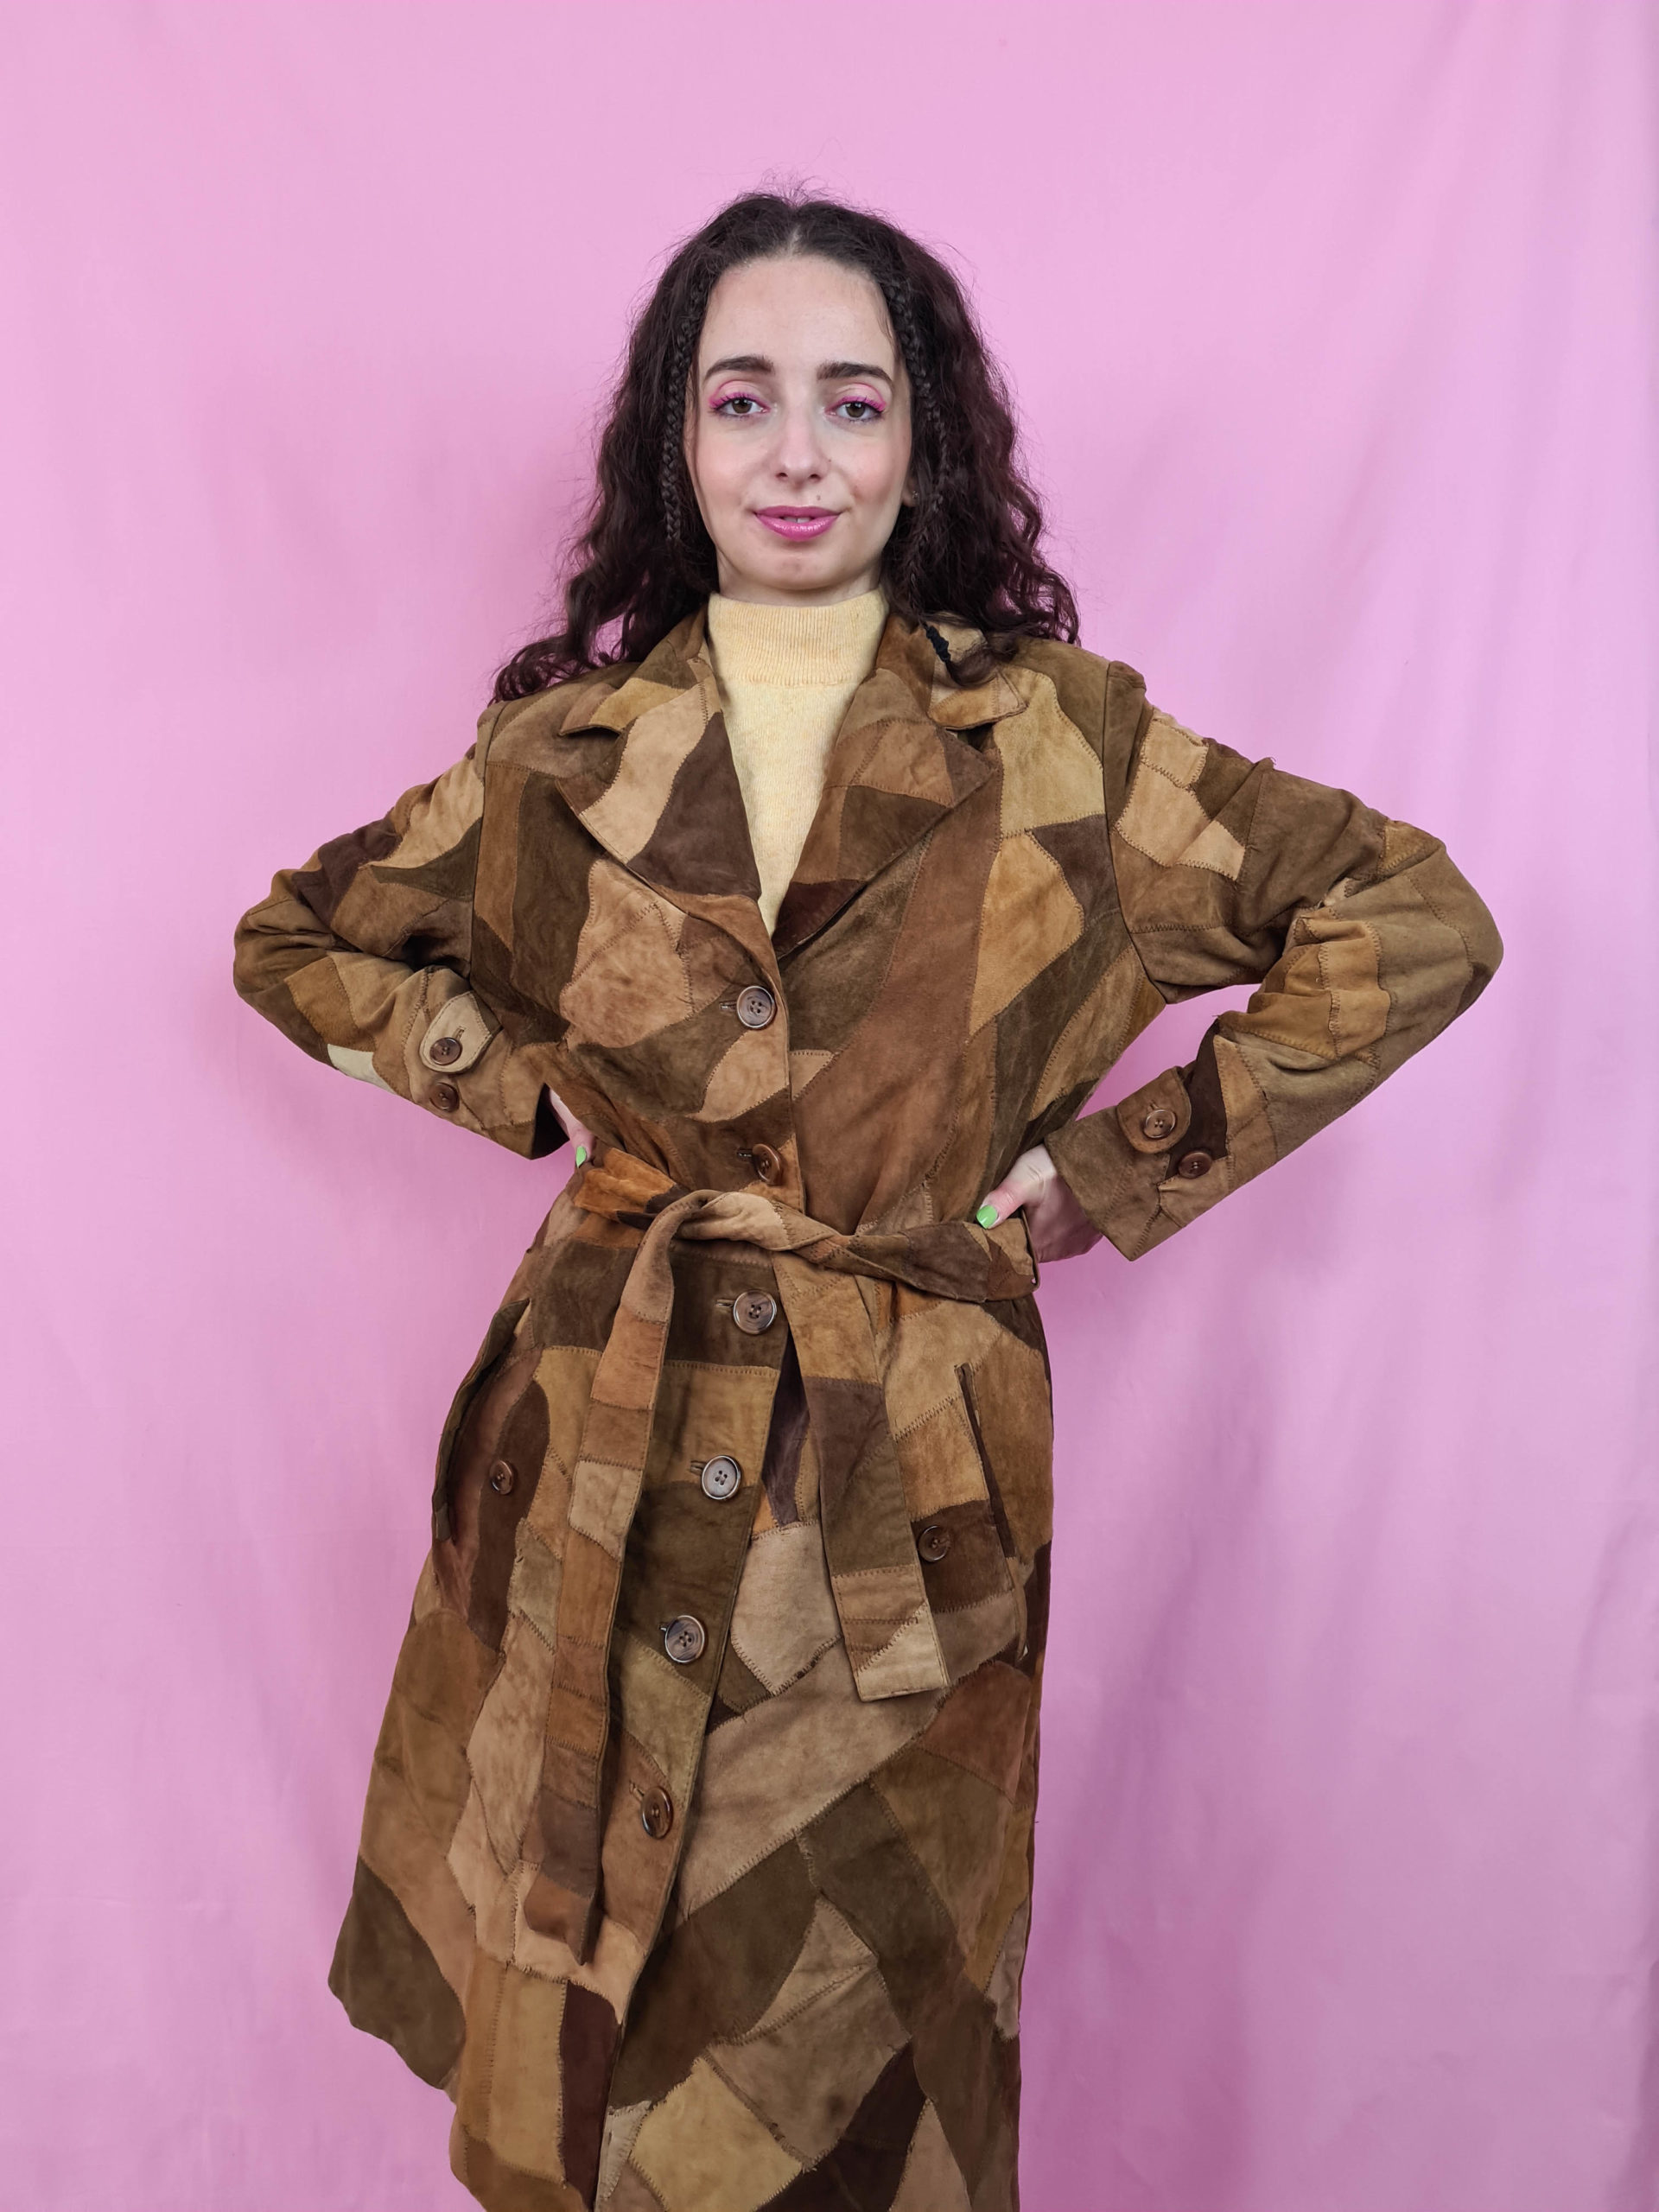 manteau en daim marron patchwork (6)